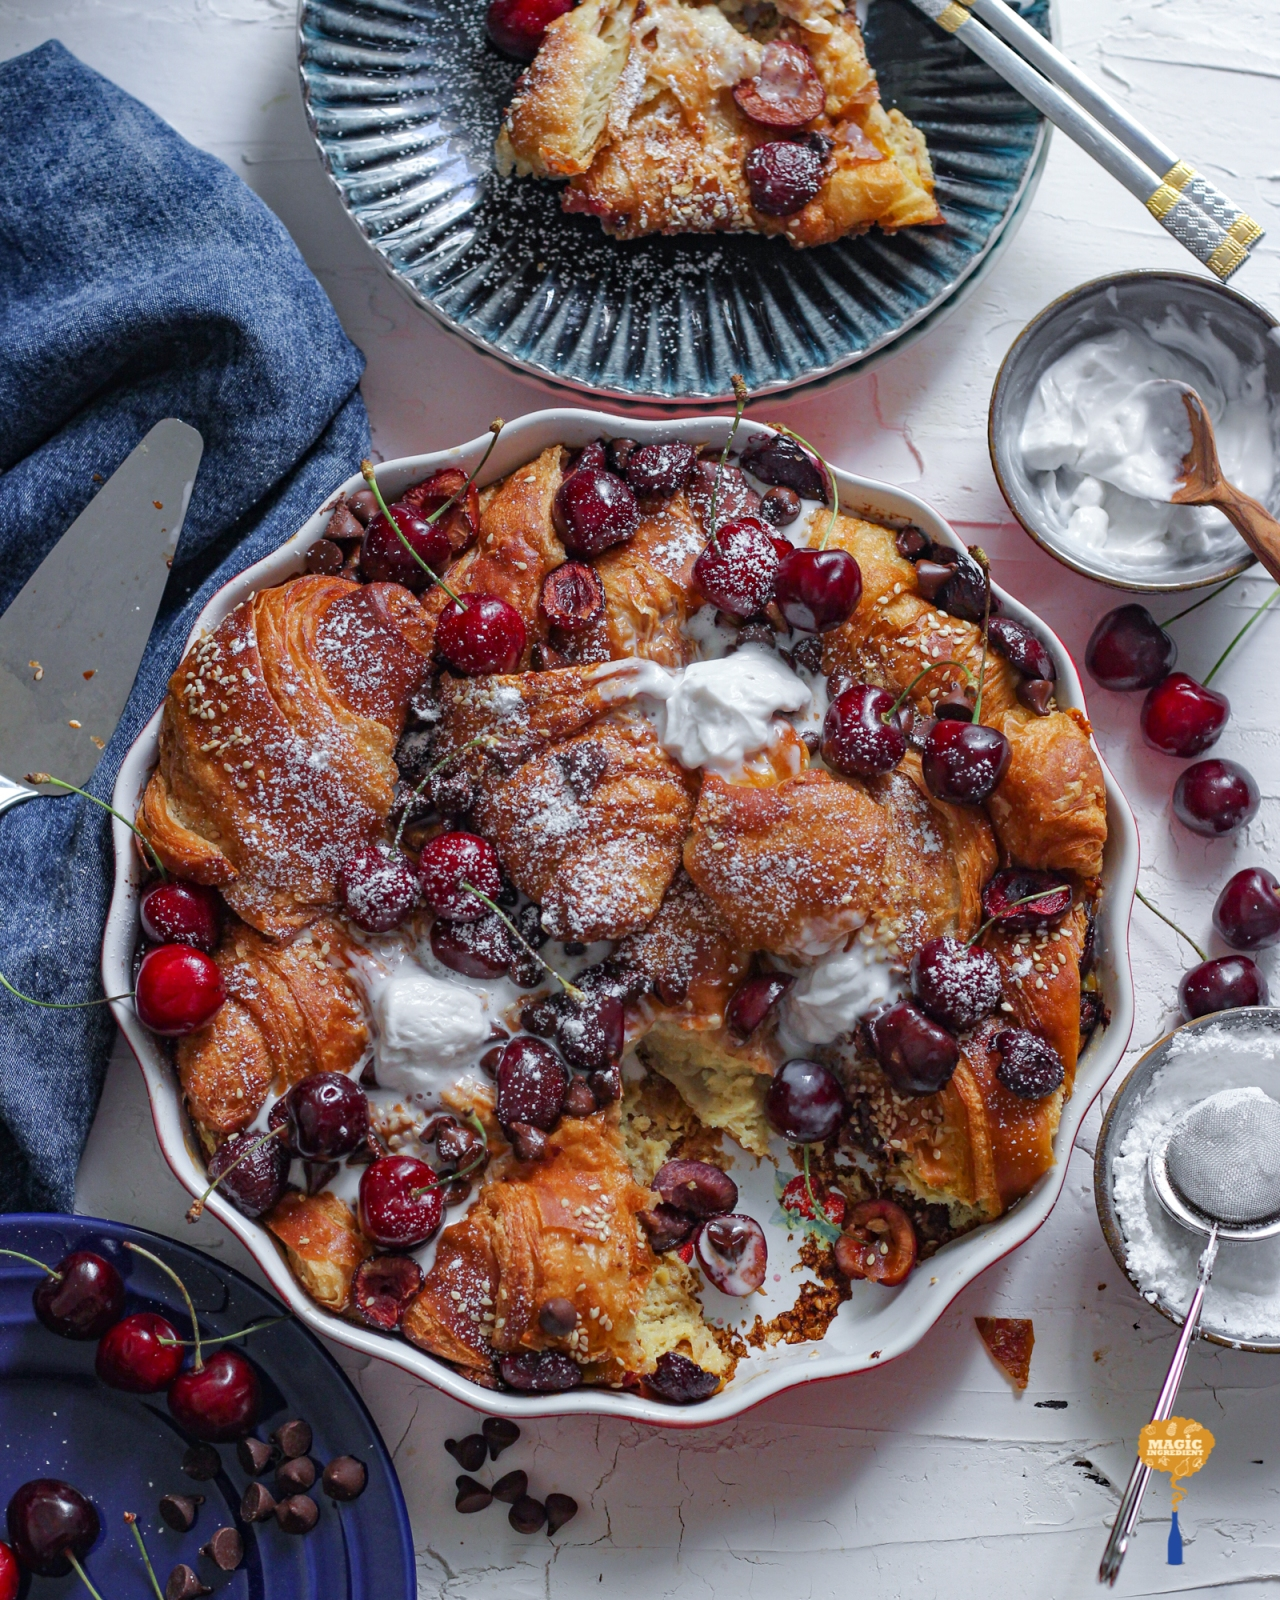 Photo of Baked French toast with croissant